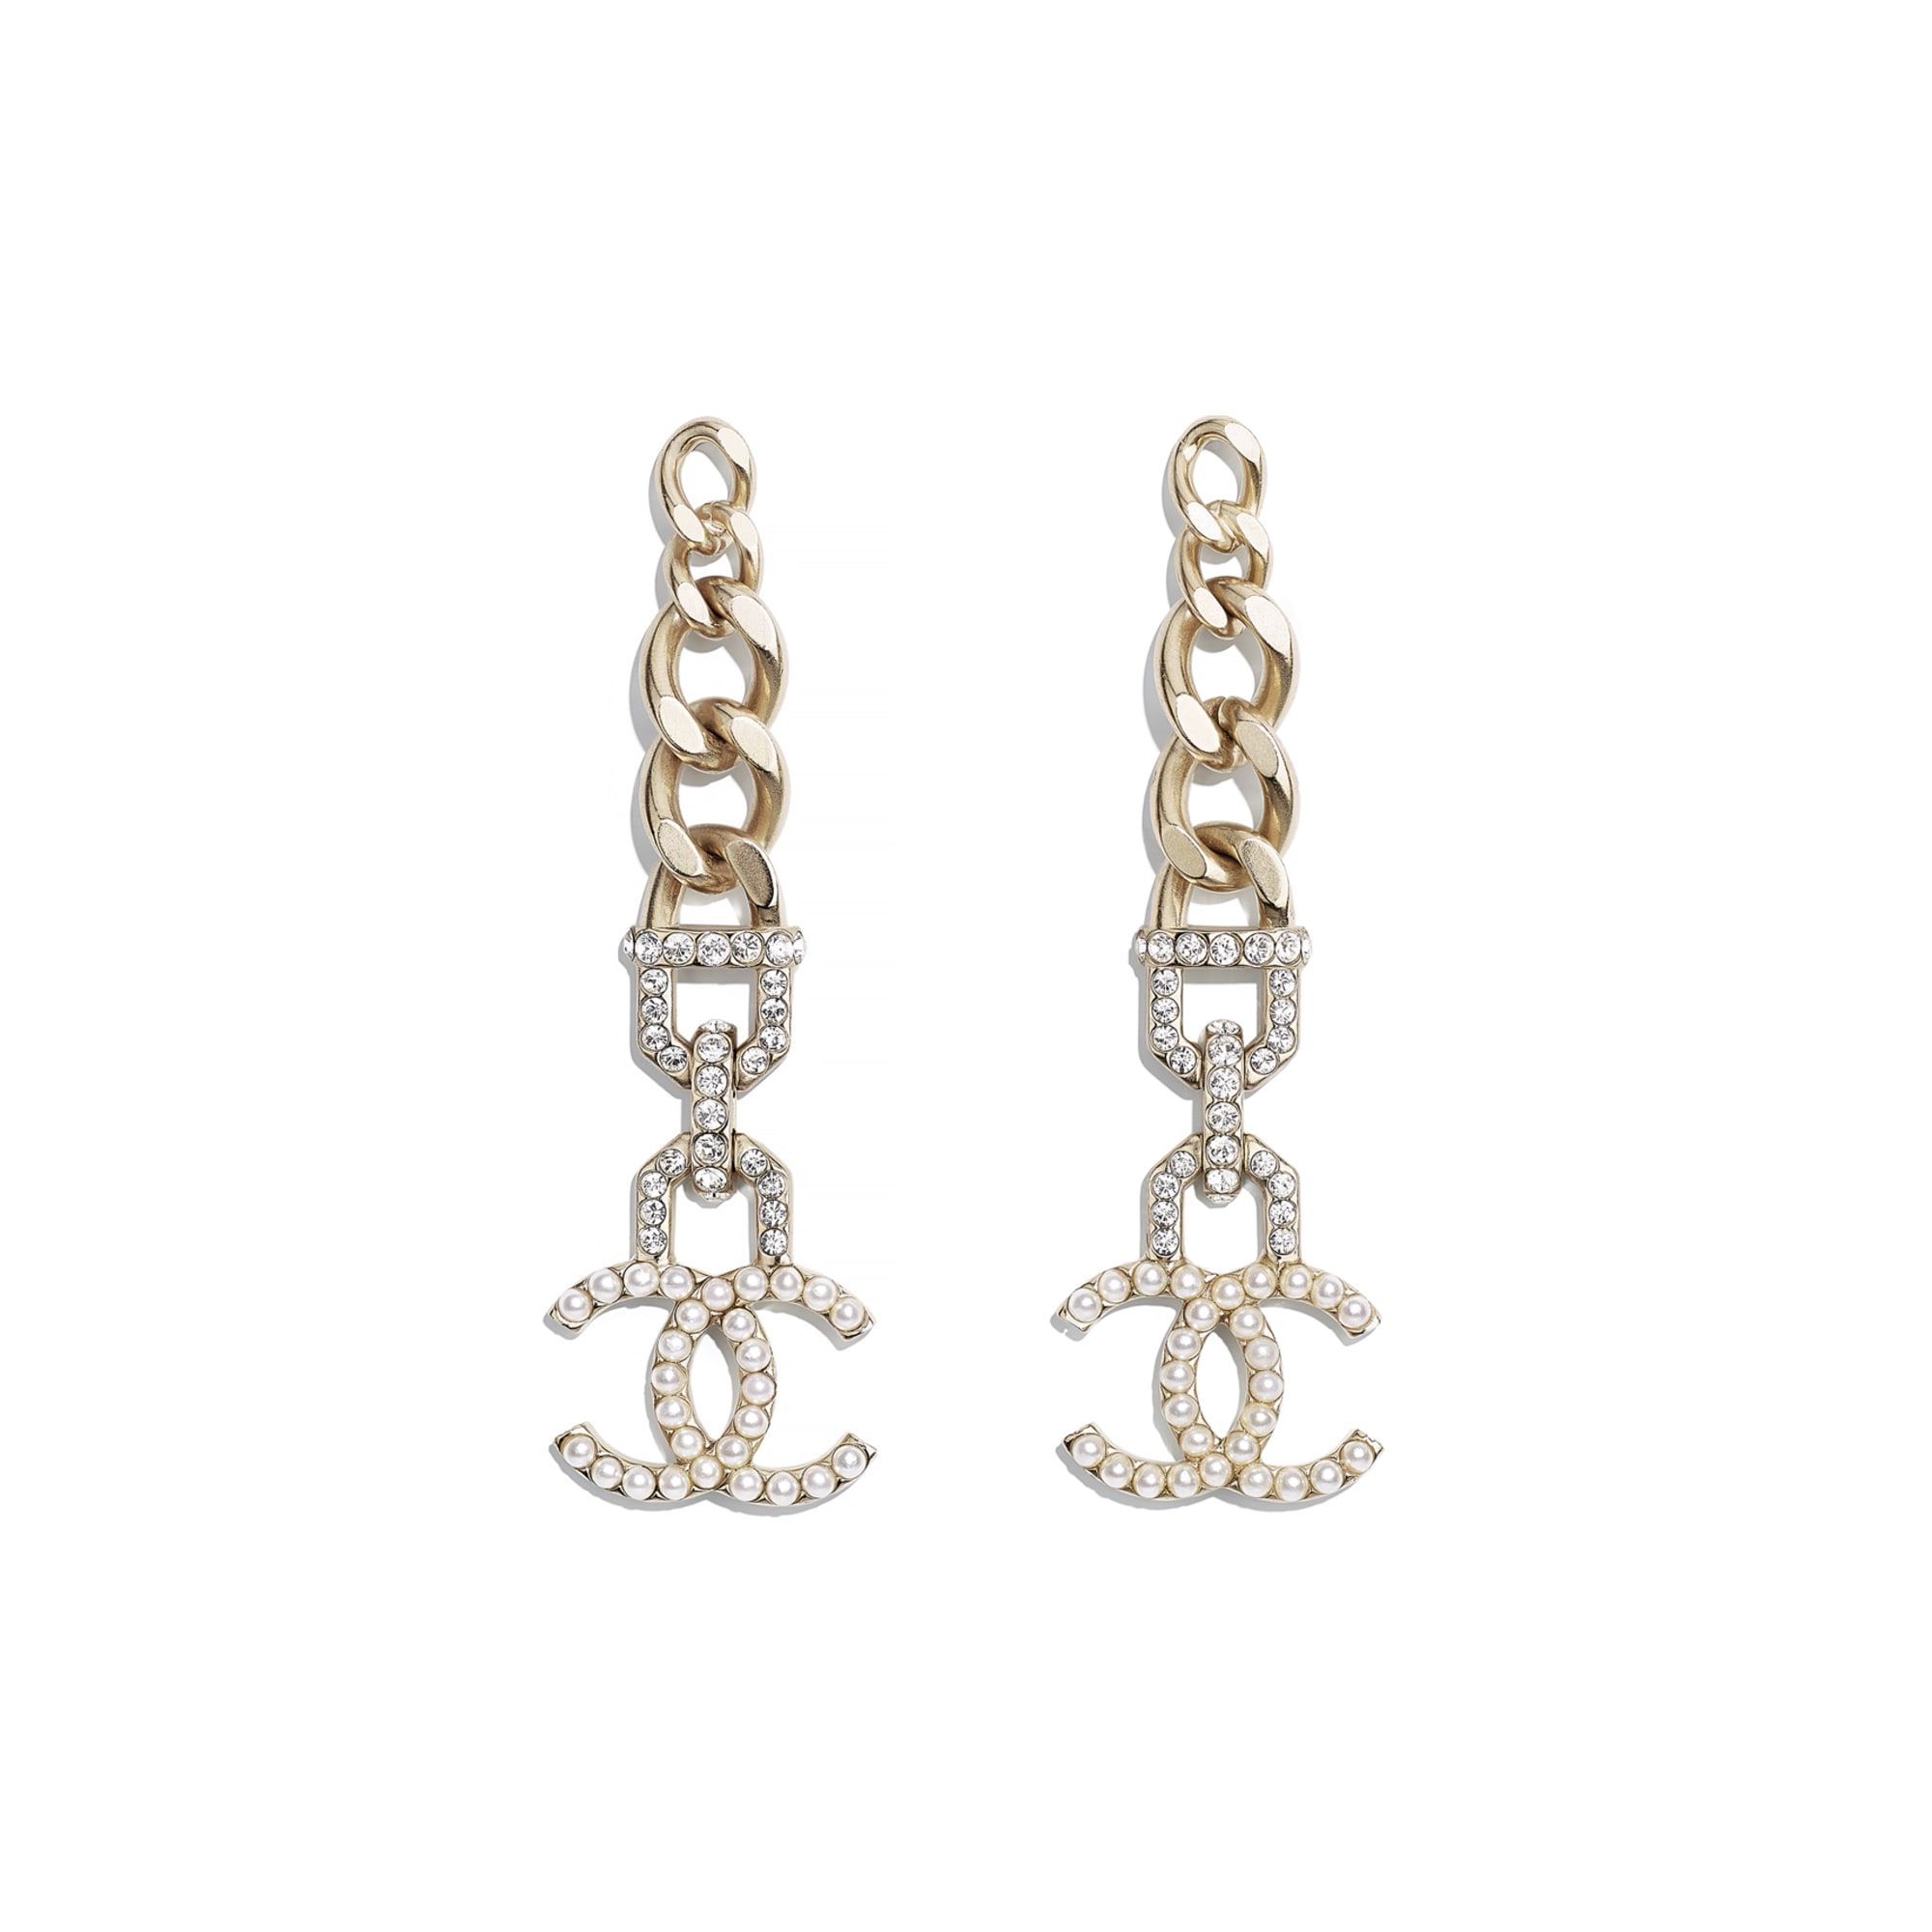 Earrings - Gold, Pearly White & Crystal - Metal, Imitation Pearls & Diamanté - Default view - see standard sized version